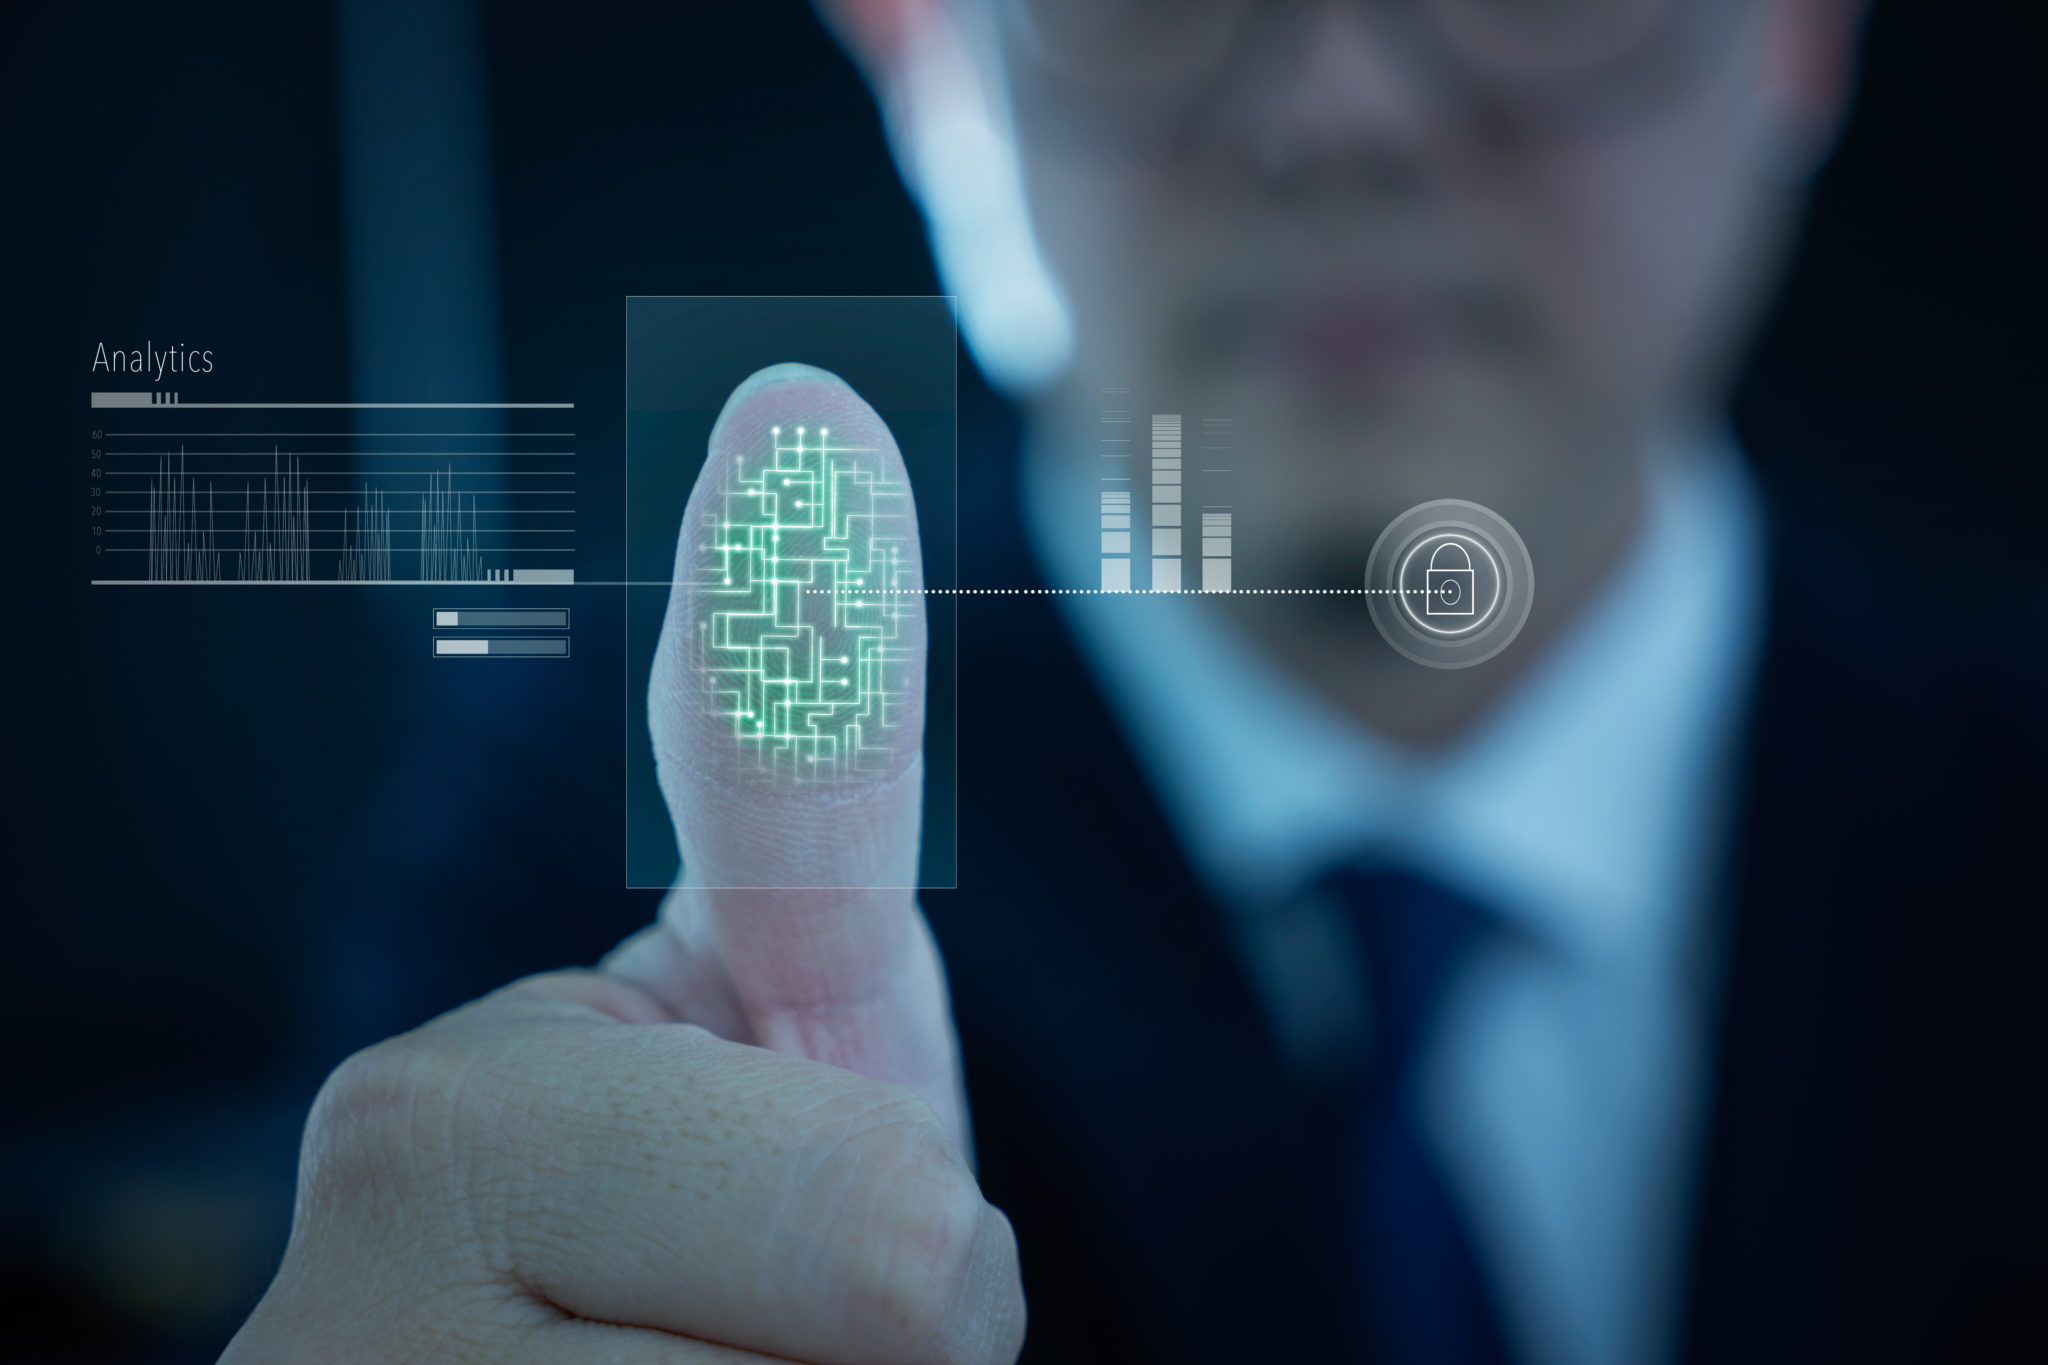 Young businessman scan fingerprint for identity analytics , concept of the internet and future immersive technology for business security .